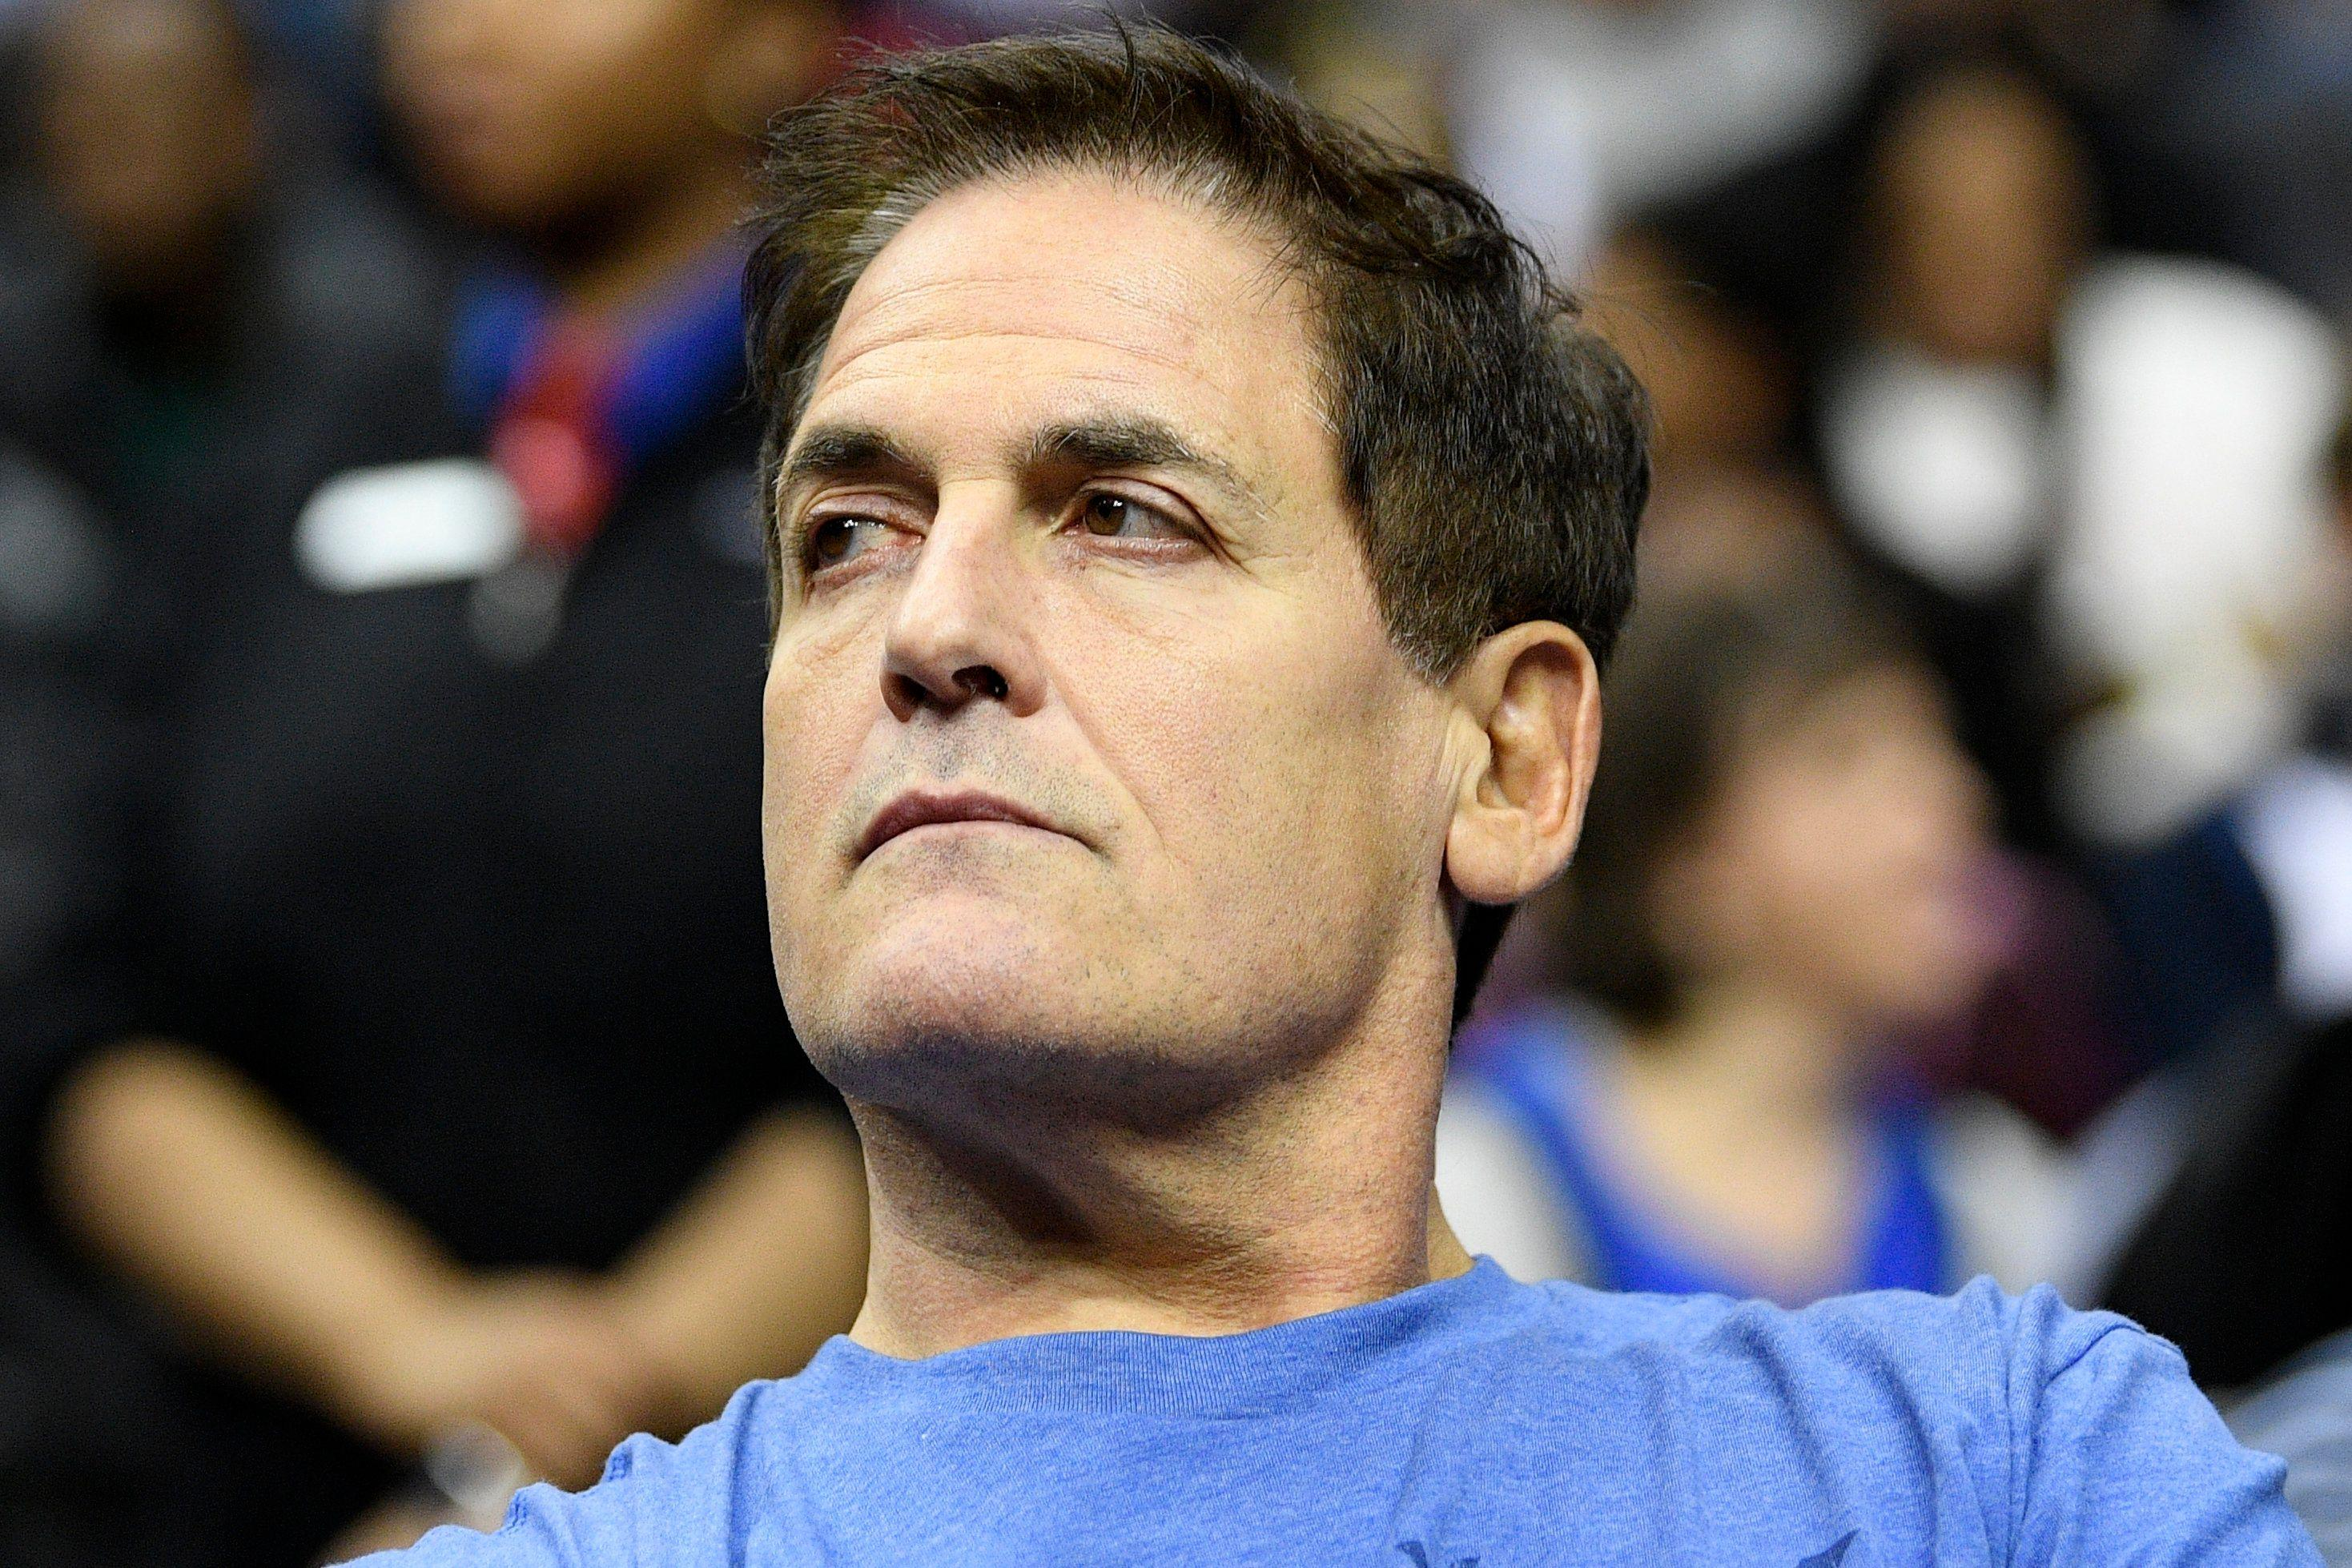 dac0a06879f Mark Cuban urges 'common sense' with Kristaps Porzingis rape allegation